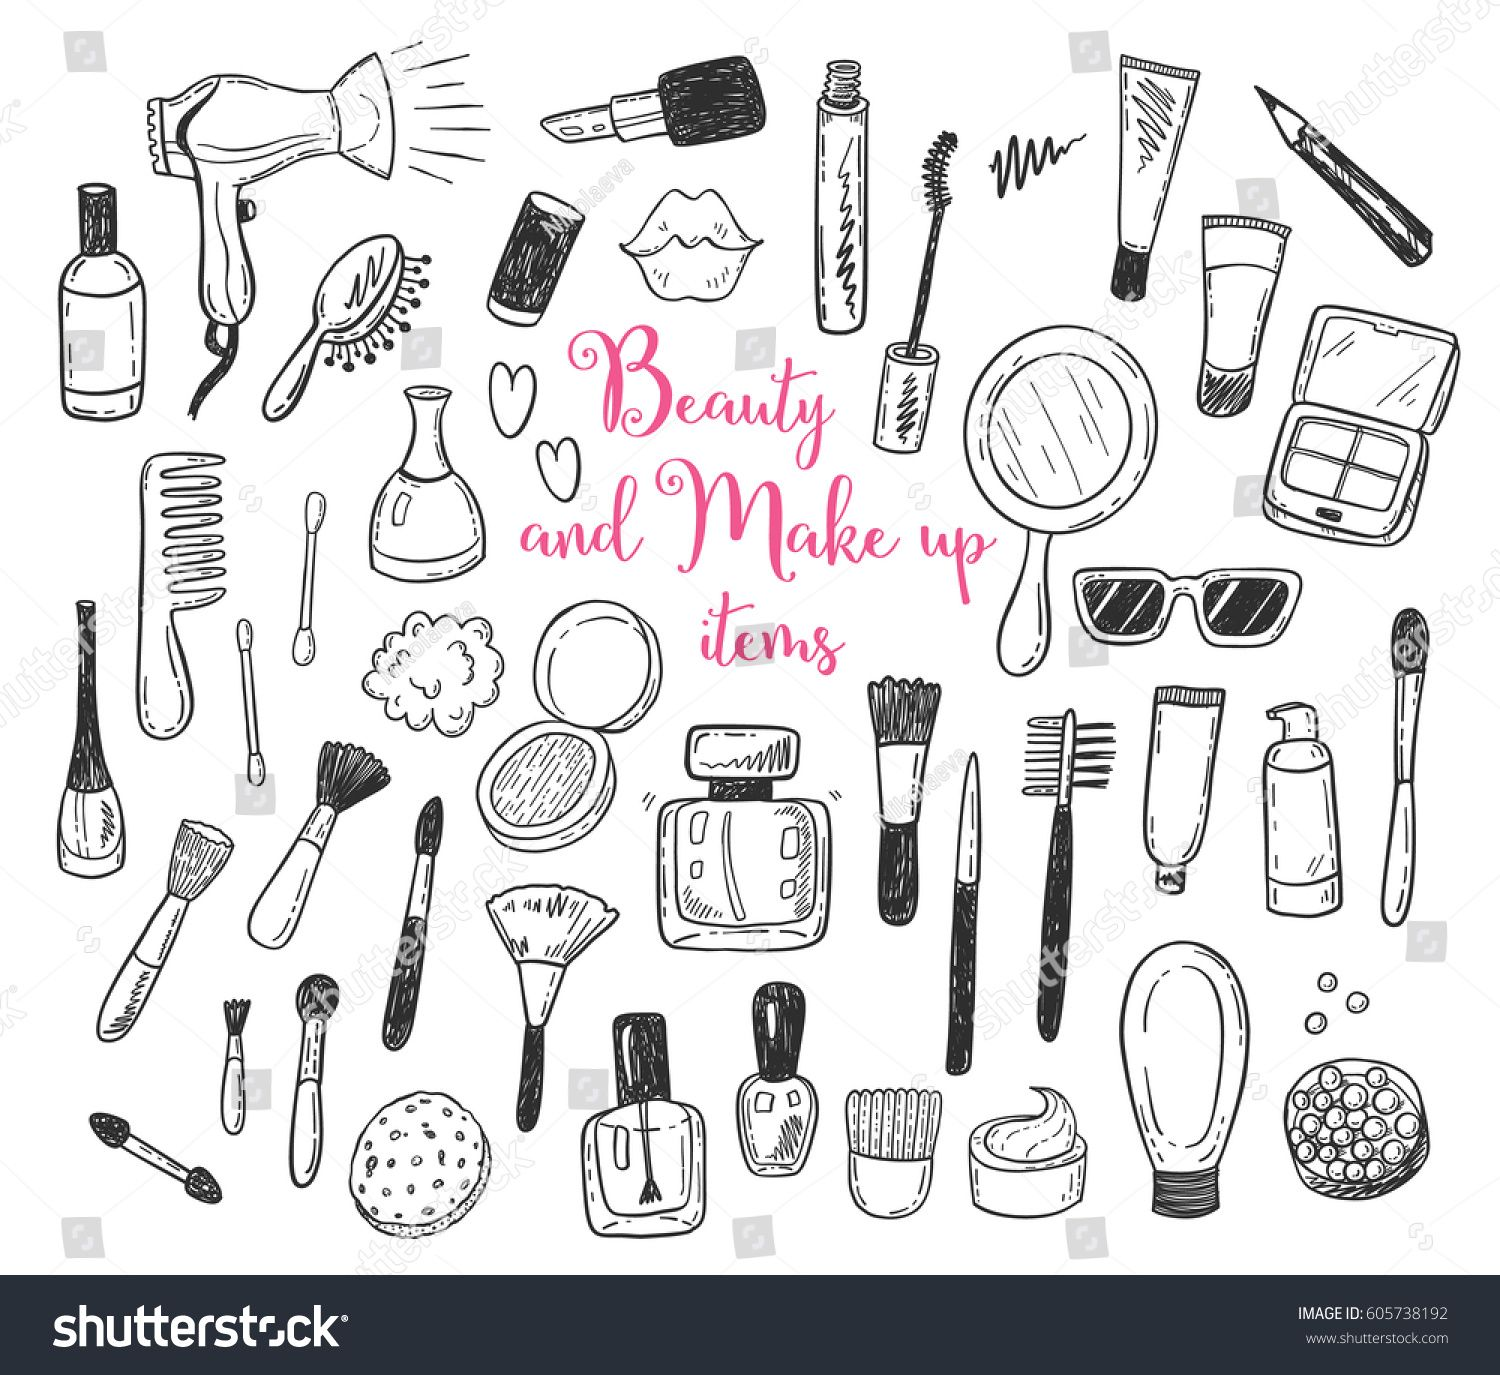 Hand Drawn Beauty Make Up Cosmetic Doodles Isolated Vector Illustrations On A White Background Doodle Images How To Draw Hands Makeup Drawing